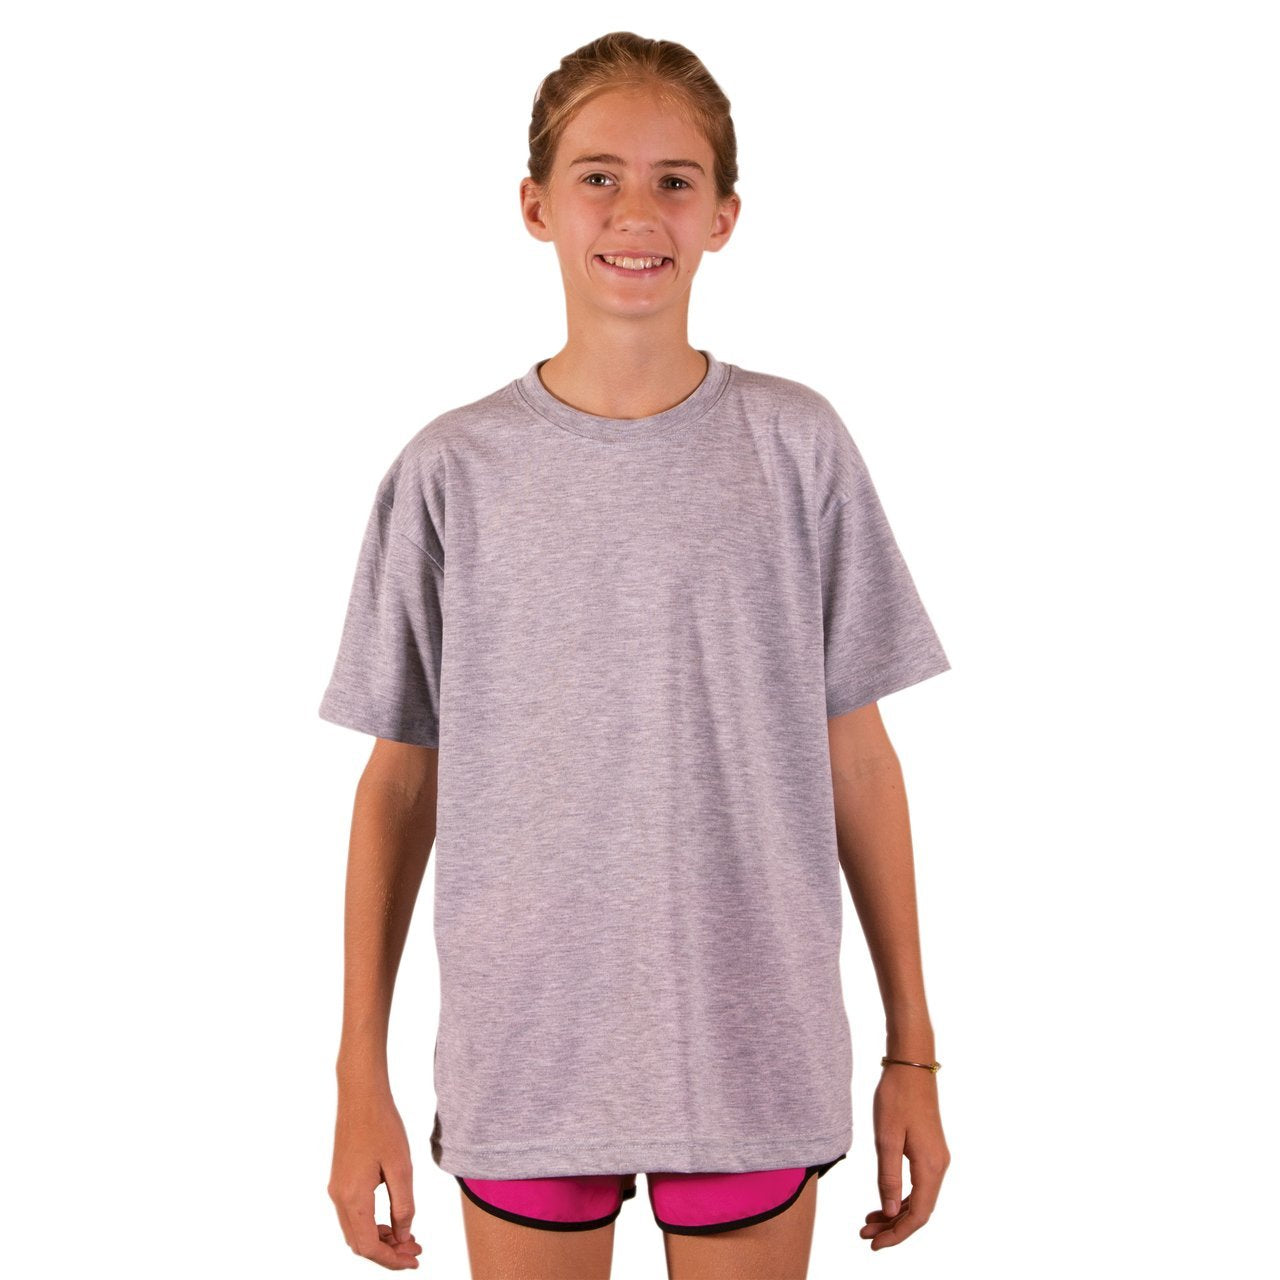 A3SJBBAH Youth Basic Performance T-Shirt - Ash Heather